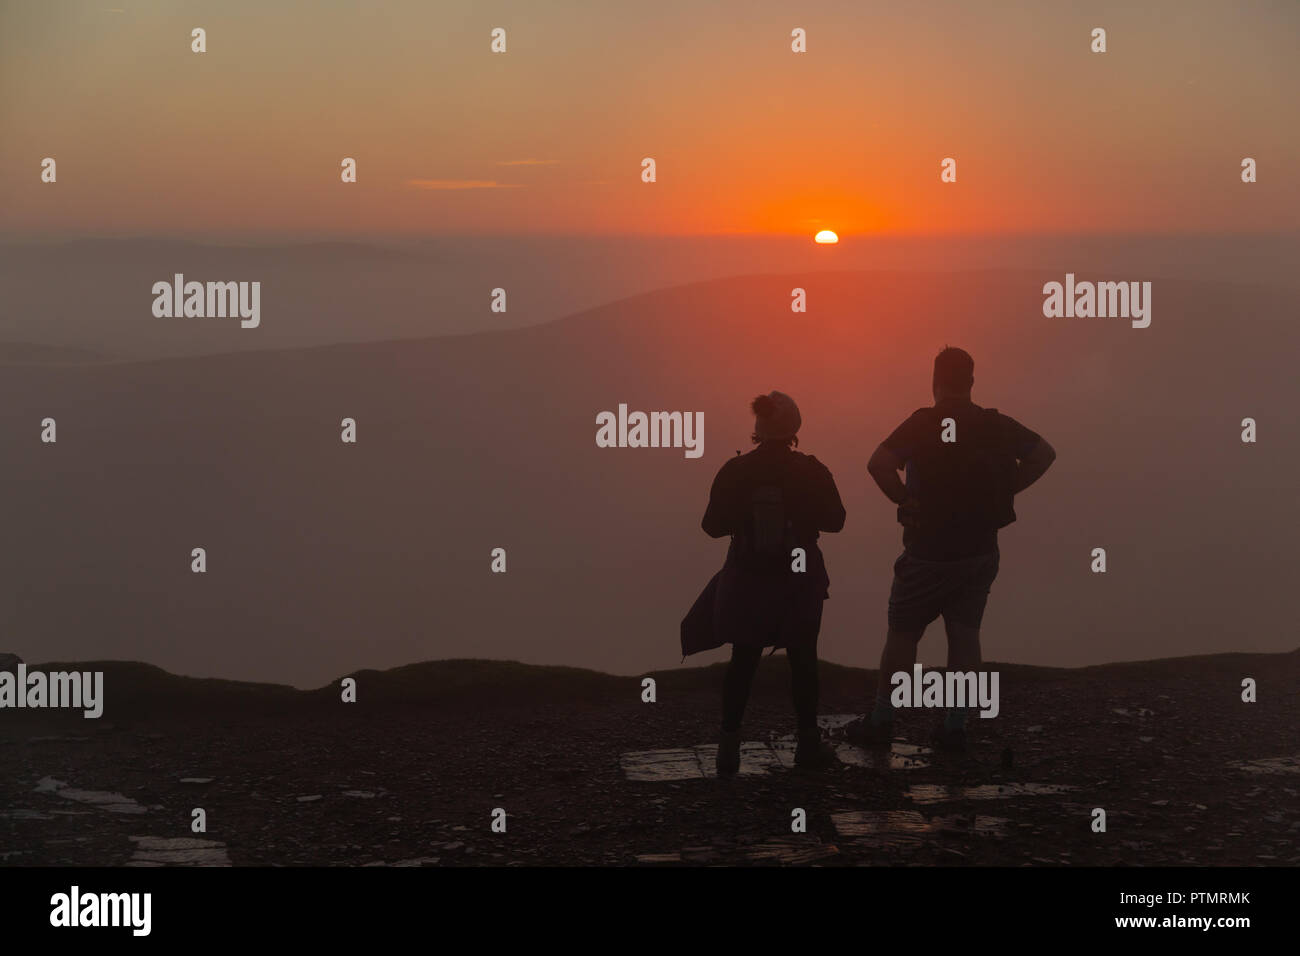 Pen y Fan, Brecon Beacons, Wales, UK. 10th October 2018. Hill walkers enjoy a dramatic sunrise from the peak of Pen y Fan, the highest mountain in southern Britain located in the Brecon Beacons.  On what is forecasted to be a warm and bright autumnal day with temperatures in south Wales predicted to peak over 21degrees celsius. Credit: Haydn Denman/Alamy Live News - Stock Image